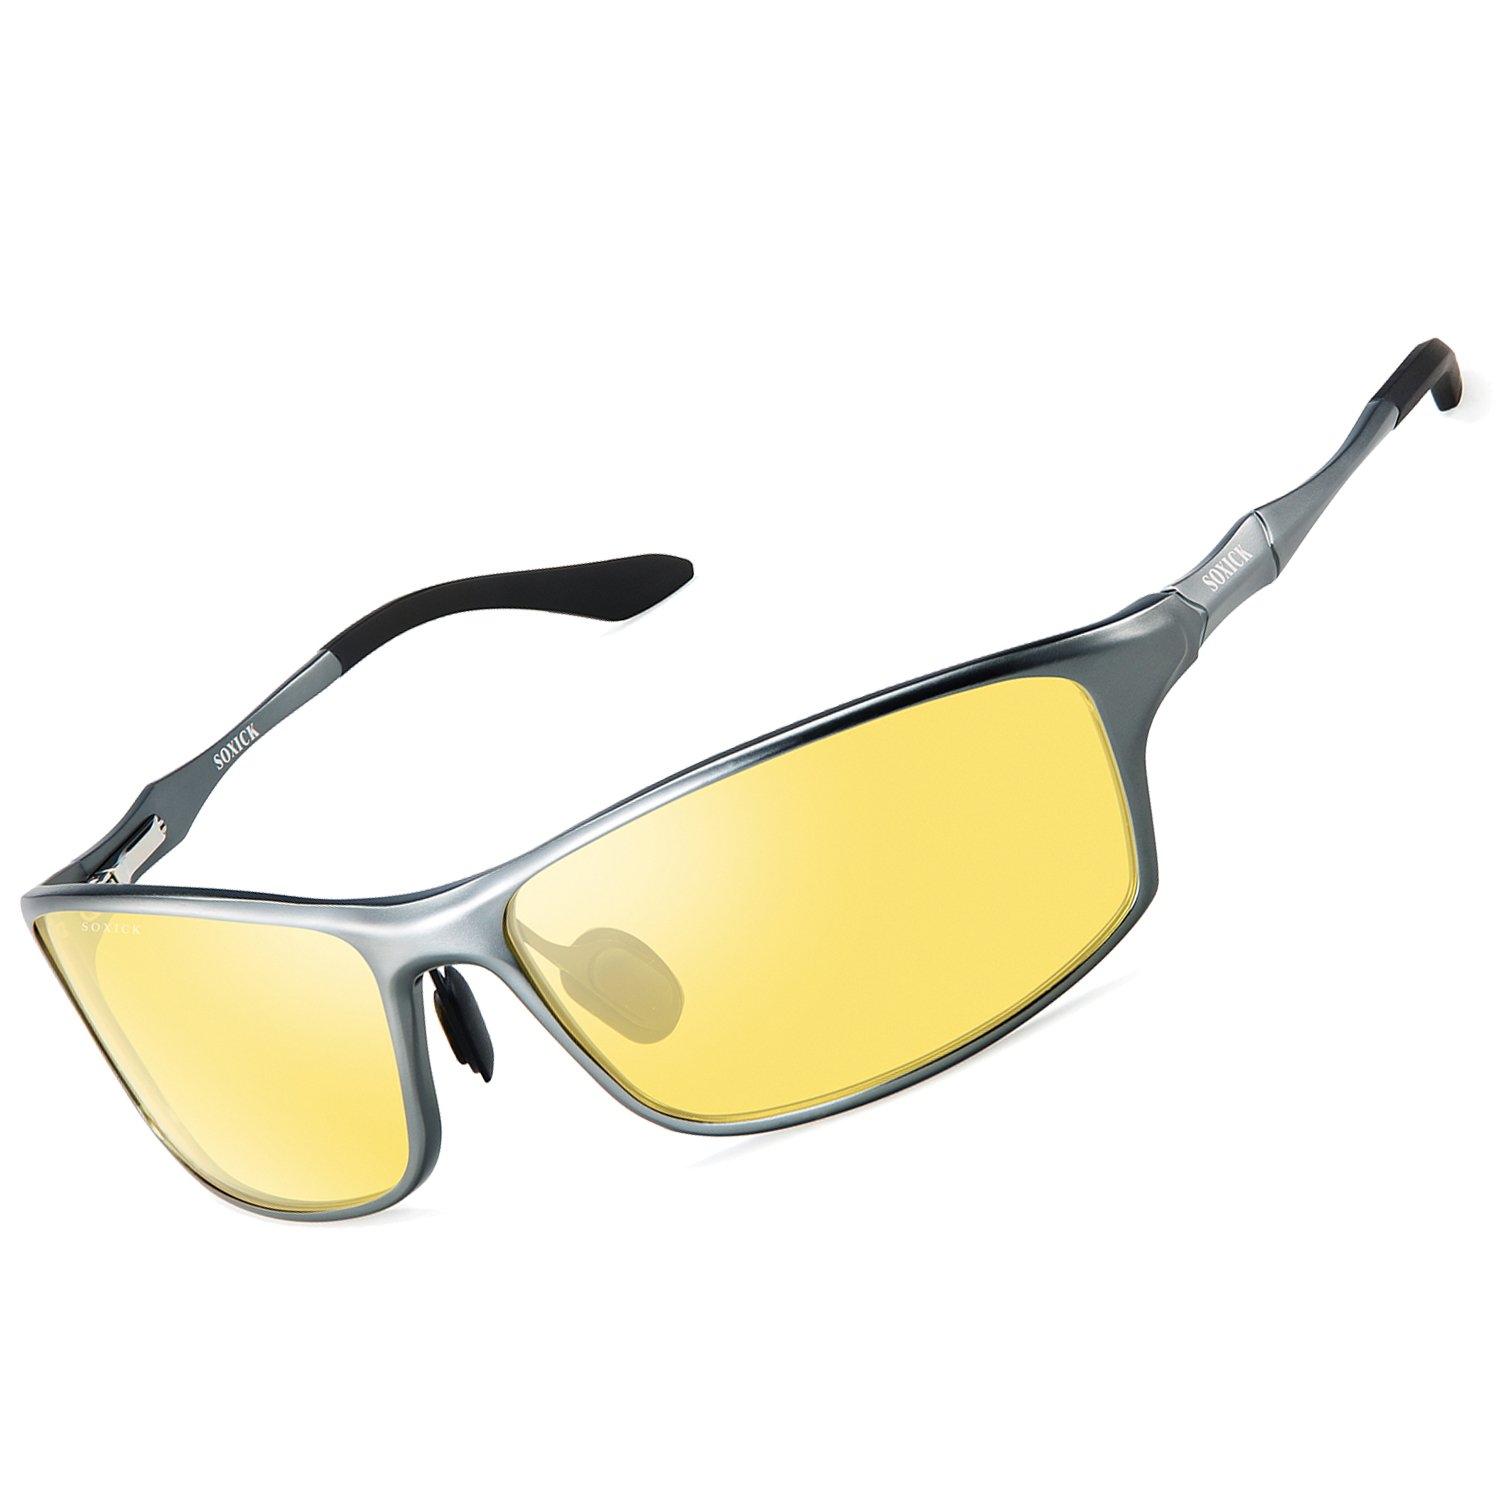 Yellow Night Glasses for Driving,2018 Upgrade Night Sight Glasses for Motorcycle Traveling Walking Racing